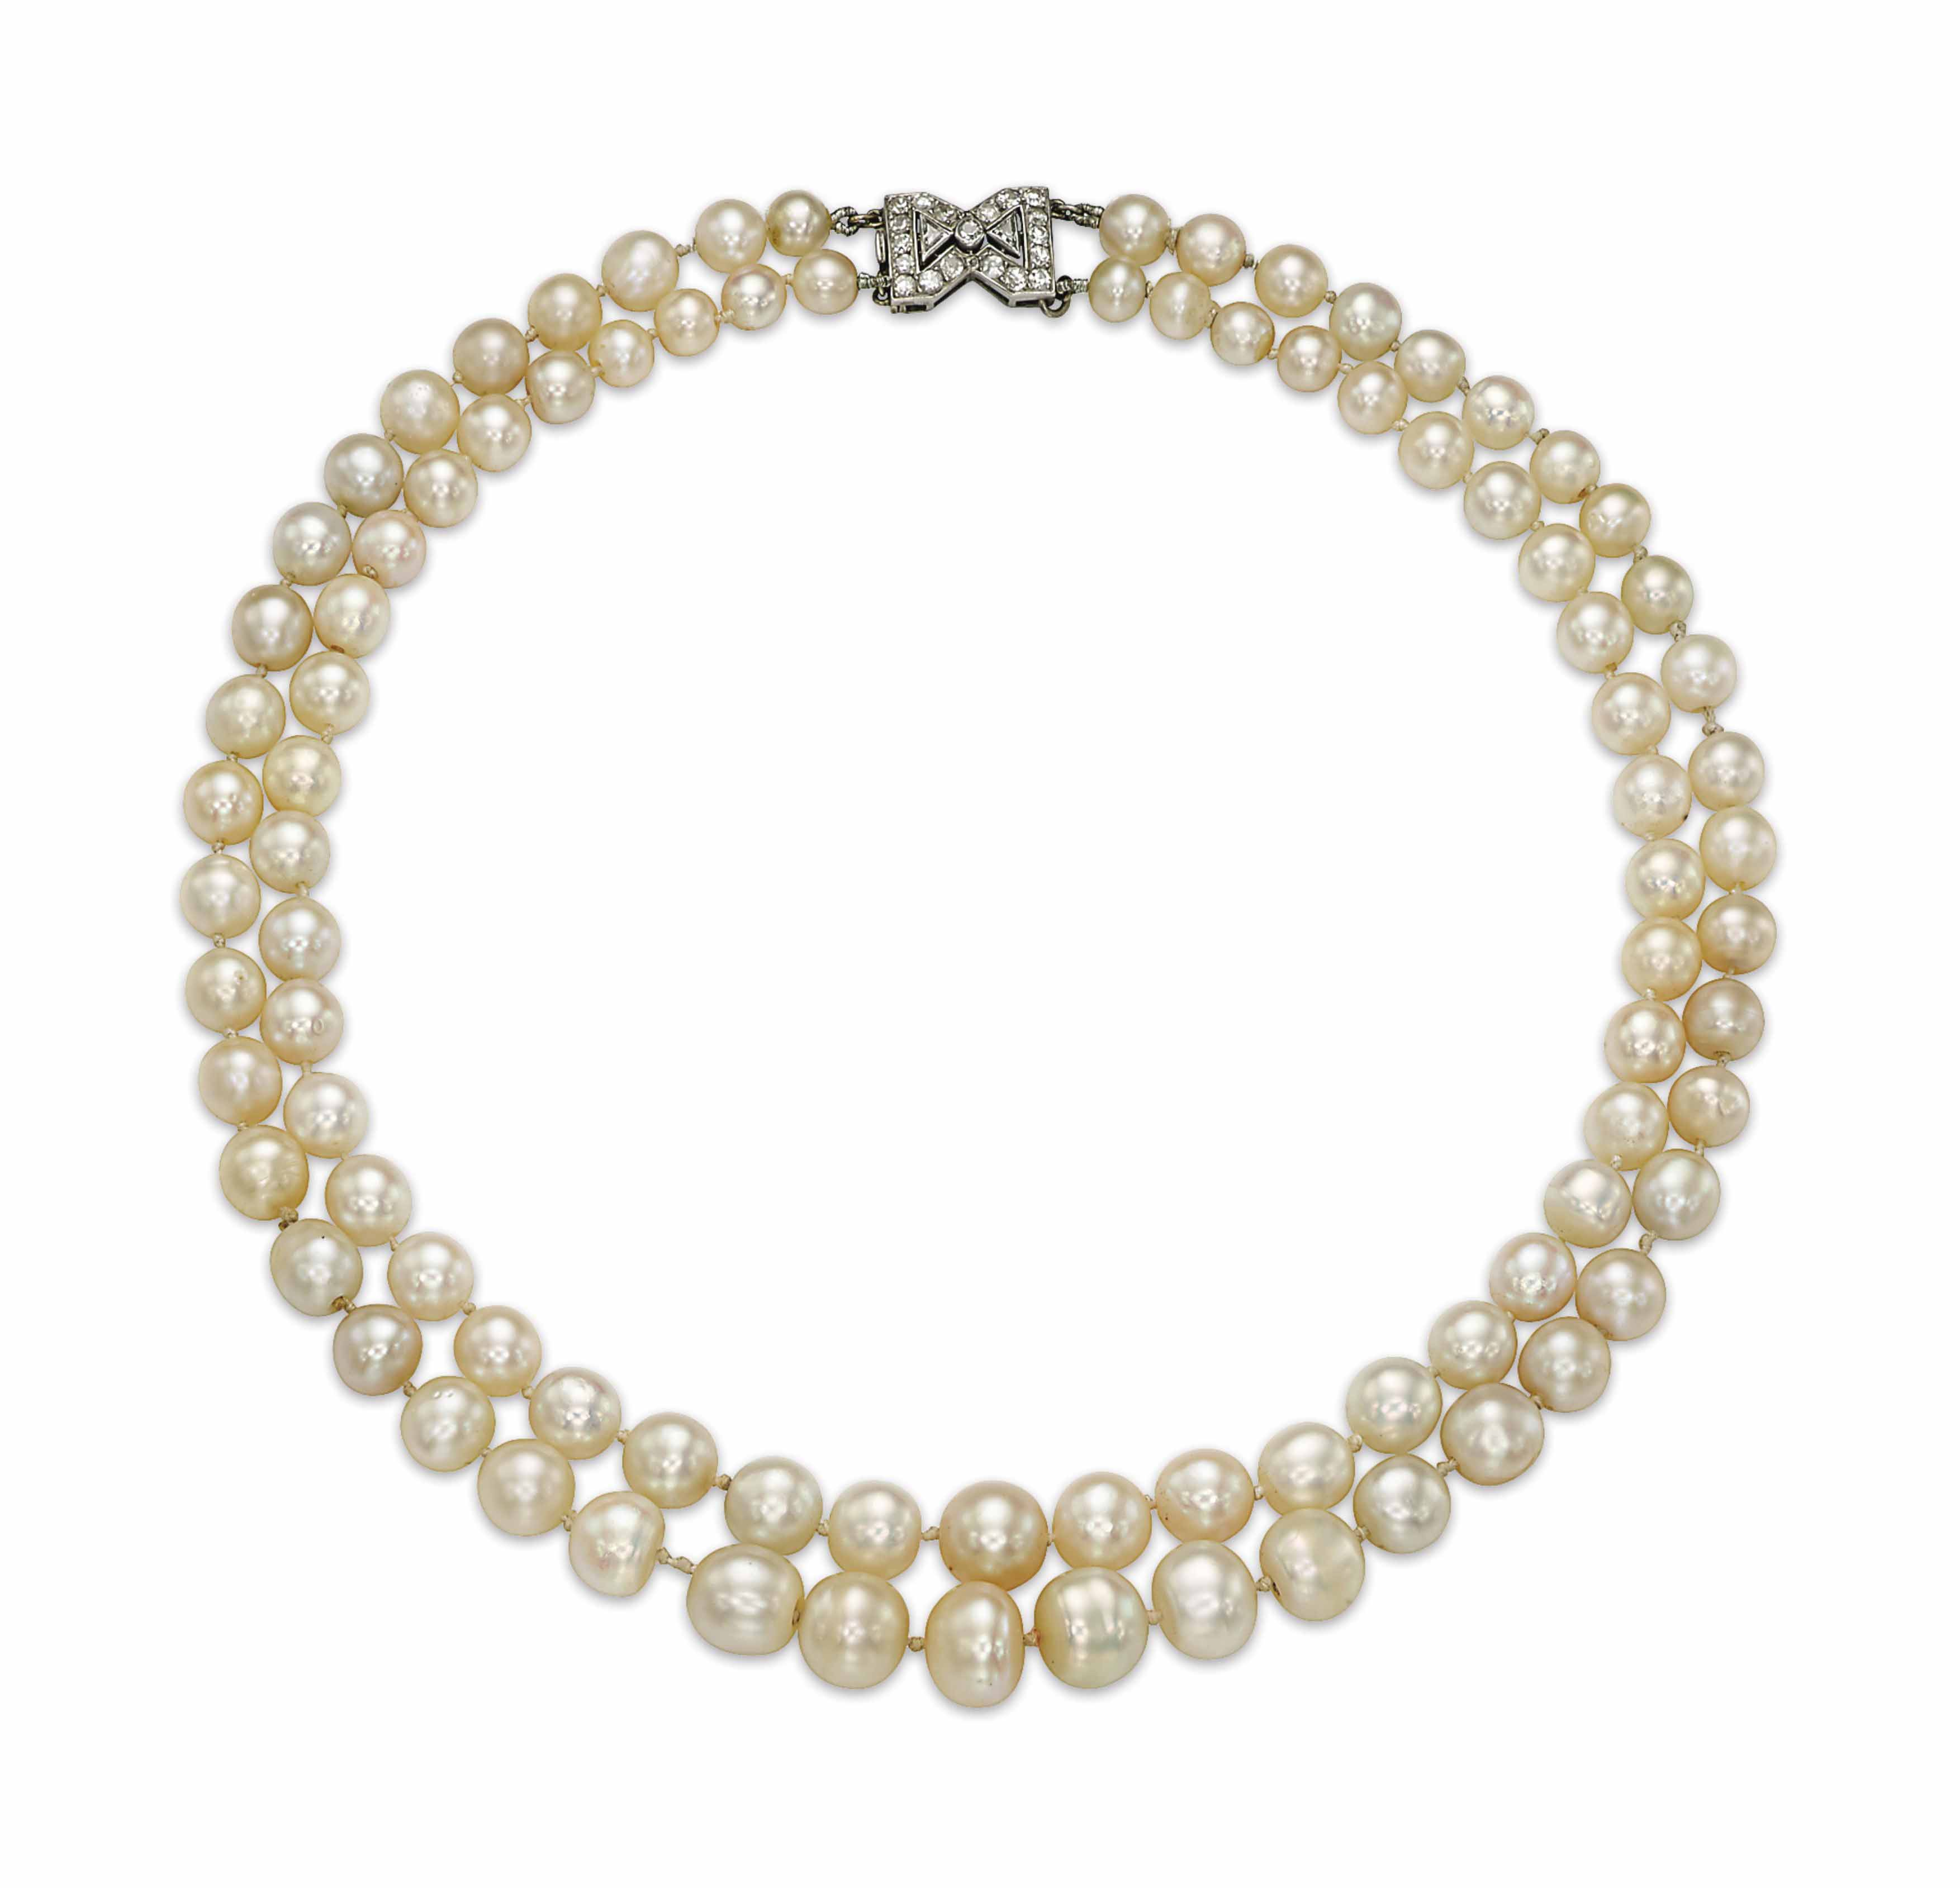 AN ART DECO NATURAL PEARL AND DIAMOND NECKLACE, BY CHAUMET